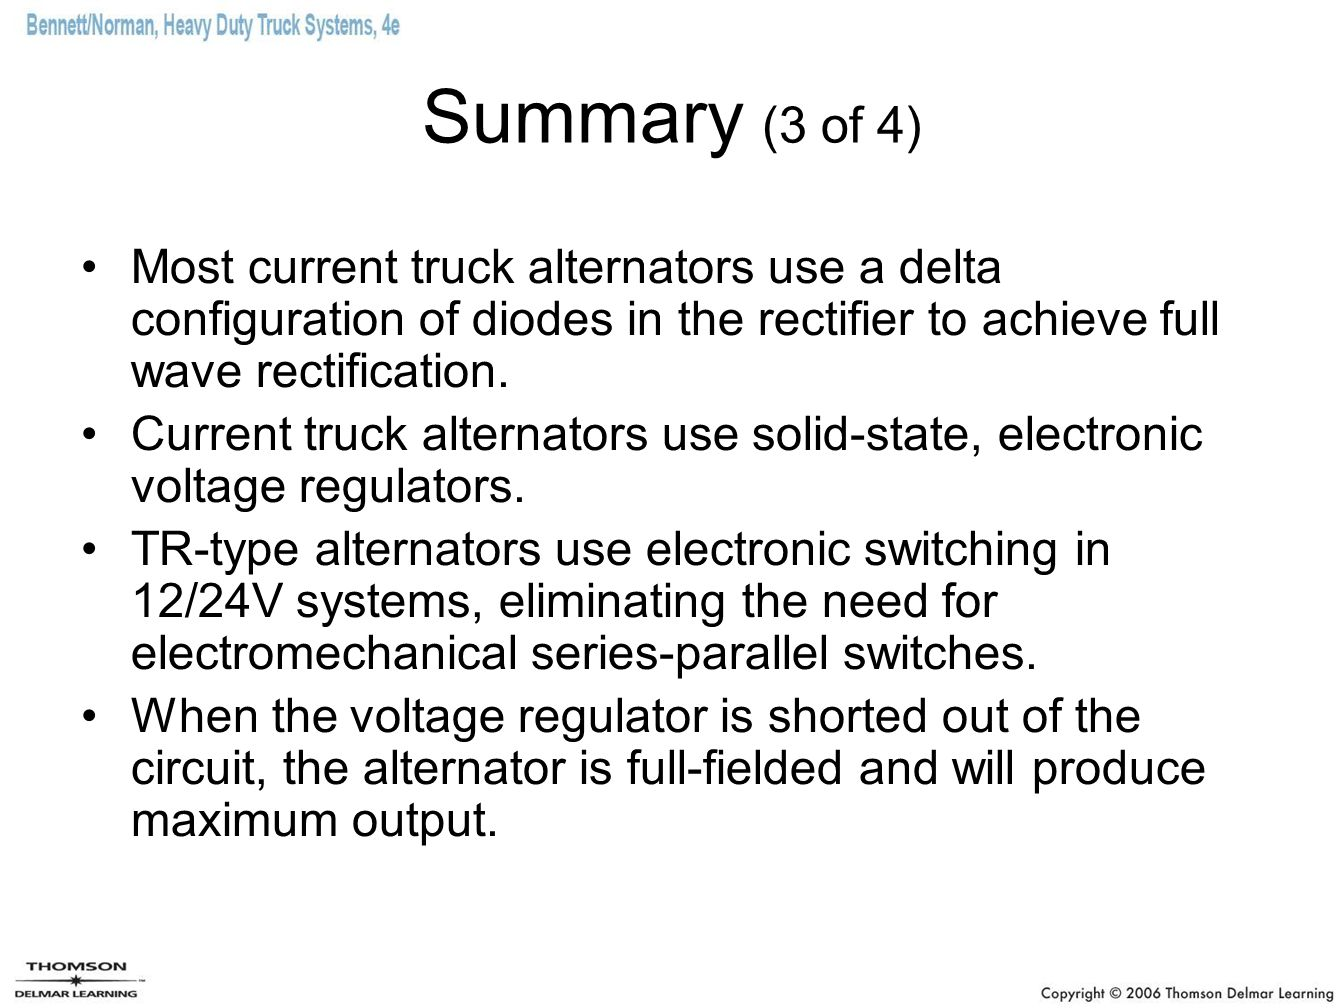 Chapter 8 Charging Systems Ppt Video Online Download For Threephase Alternator Automotive Voltage Regulator Circuit System Summary 3 Of 4 Most Current Truck Alternators Use A Delta Configuration Diodes